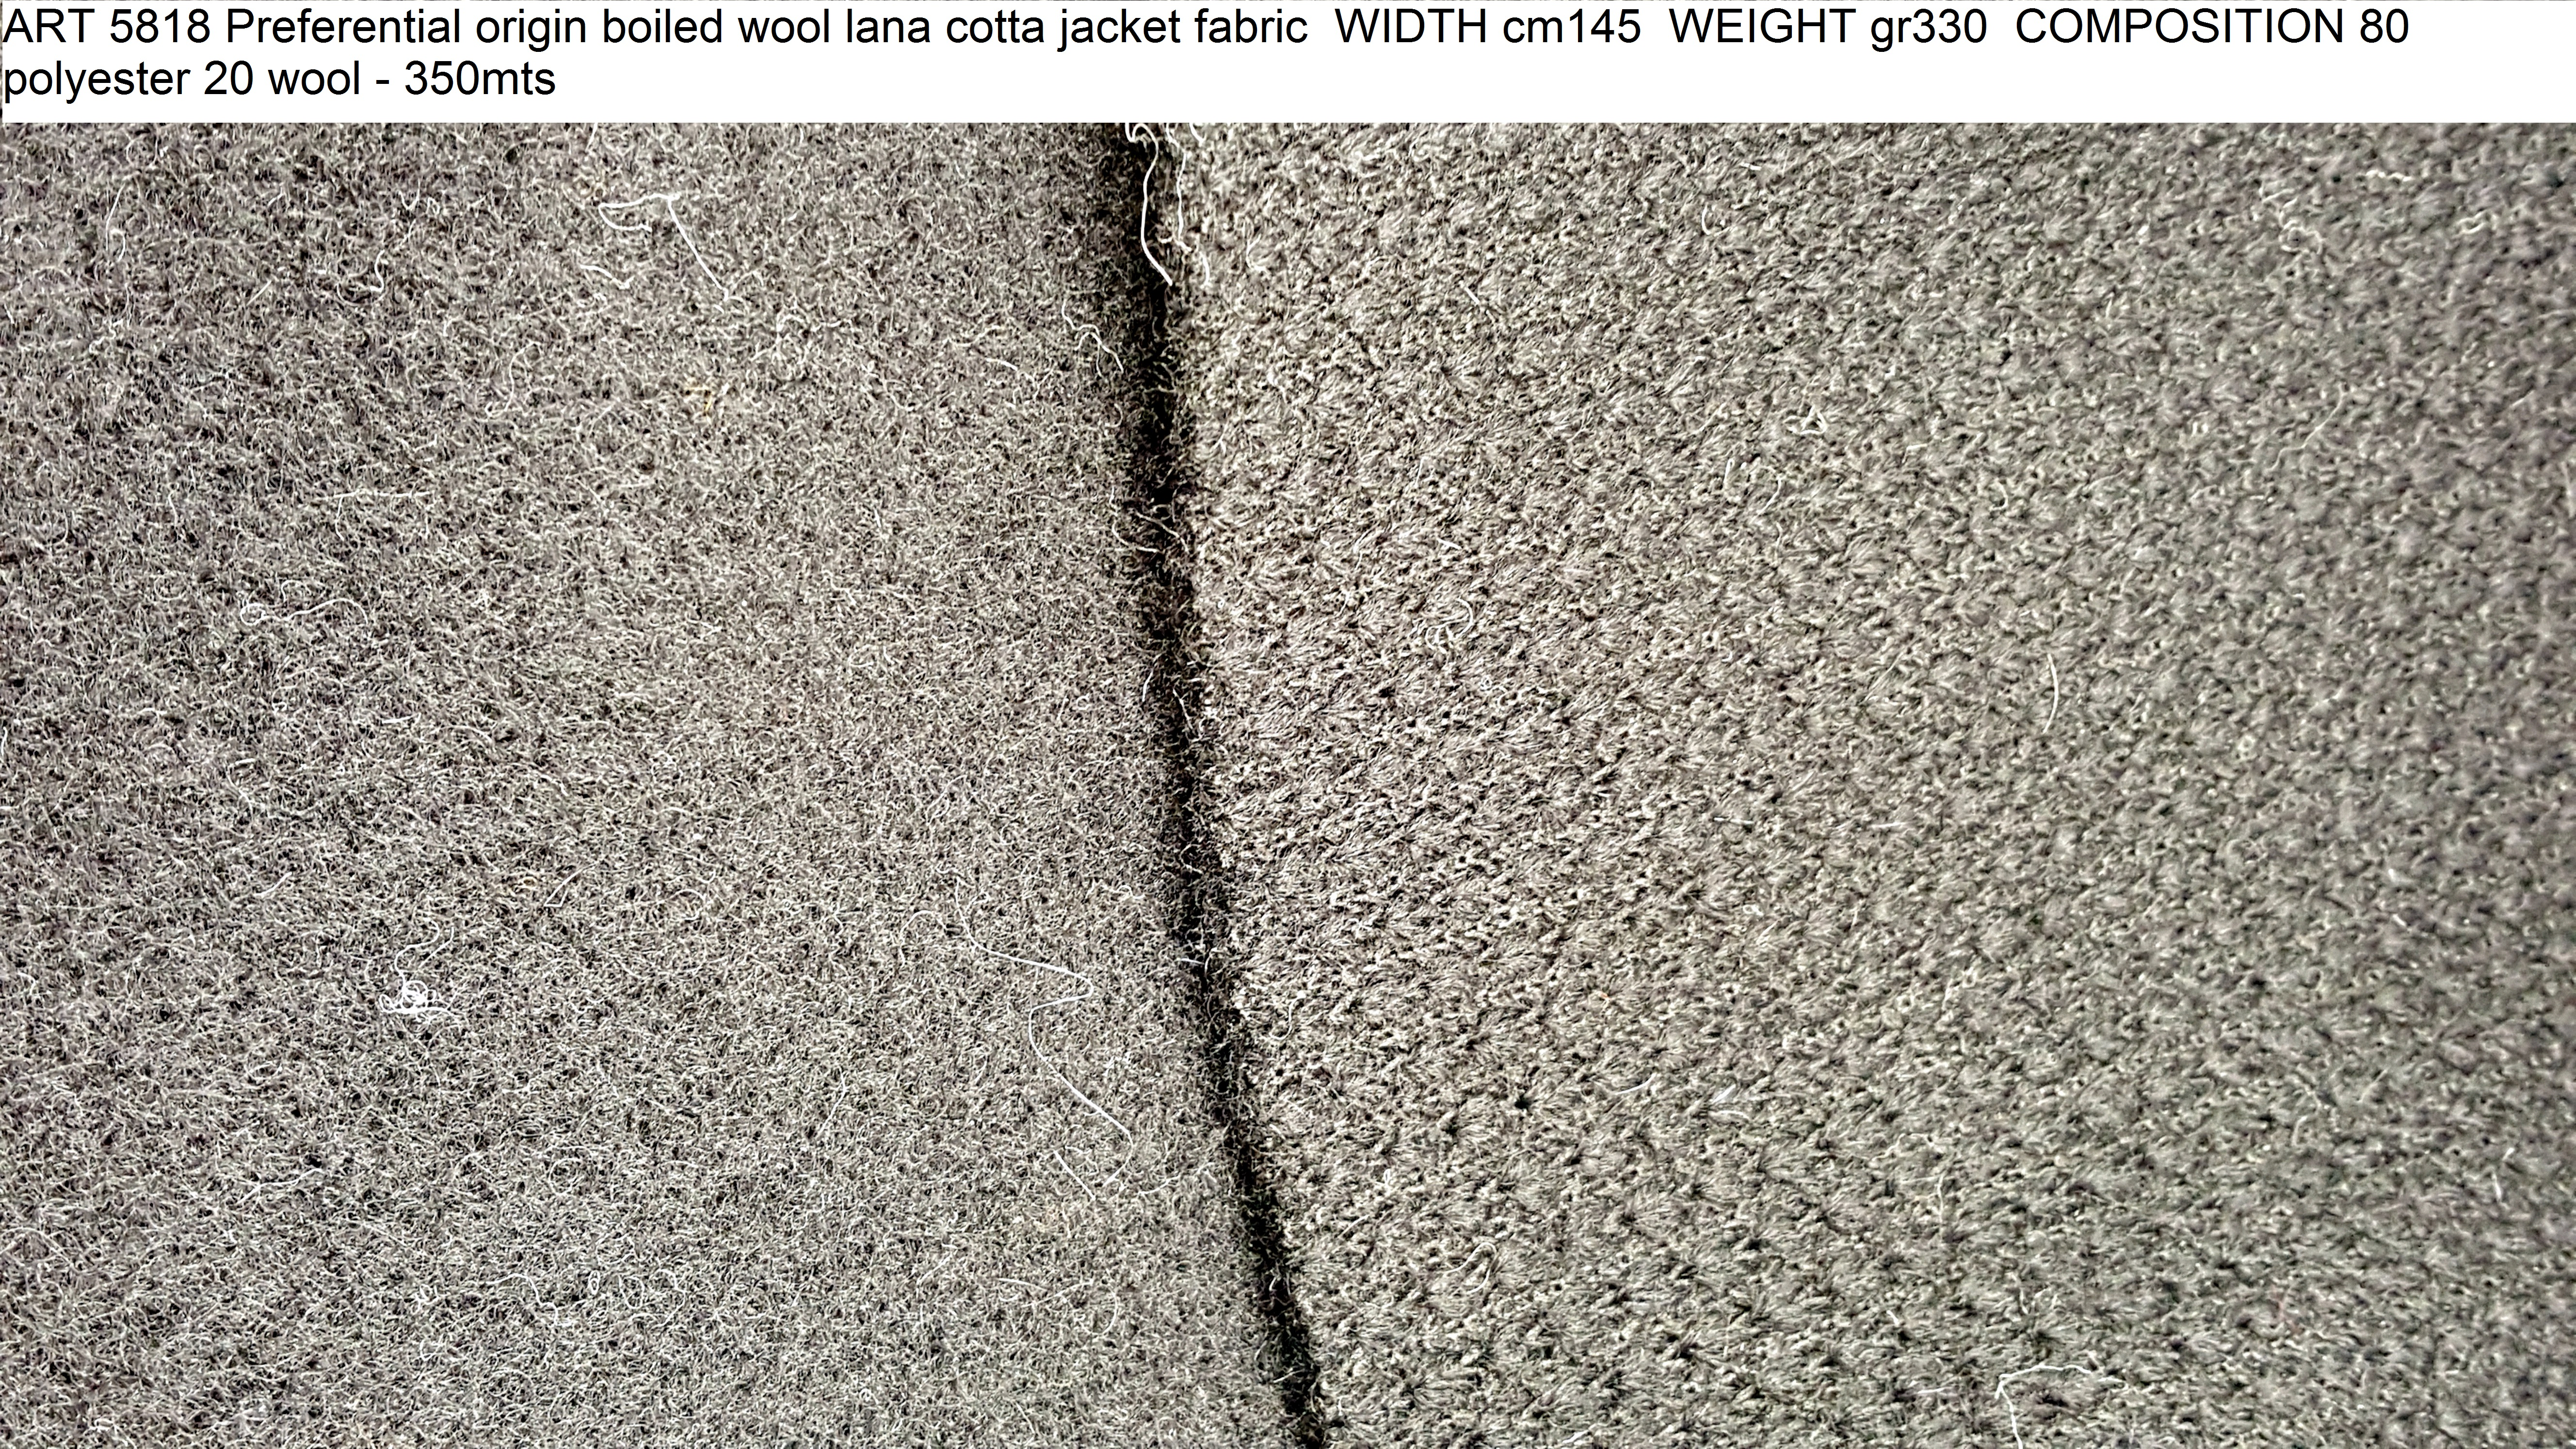 ART 5818 Preferential origin boiled wool lana cotta jacket fabric WIDTH cm145 WEIGHT gr330 COMPOSITION 80 polyester 20 wool - 350mts